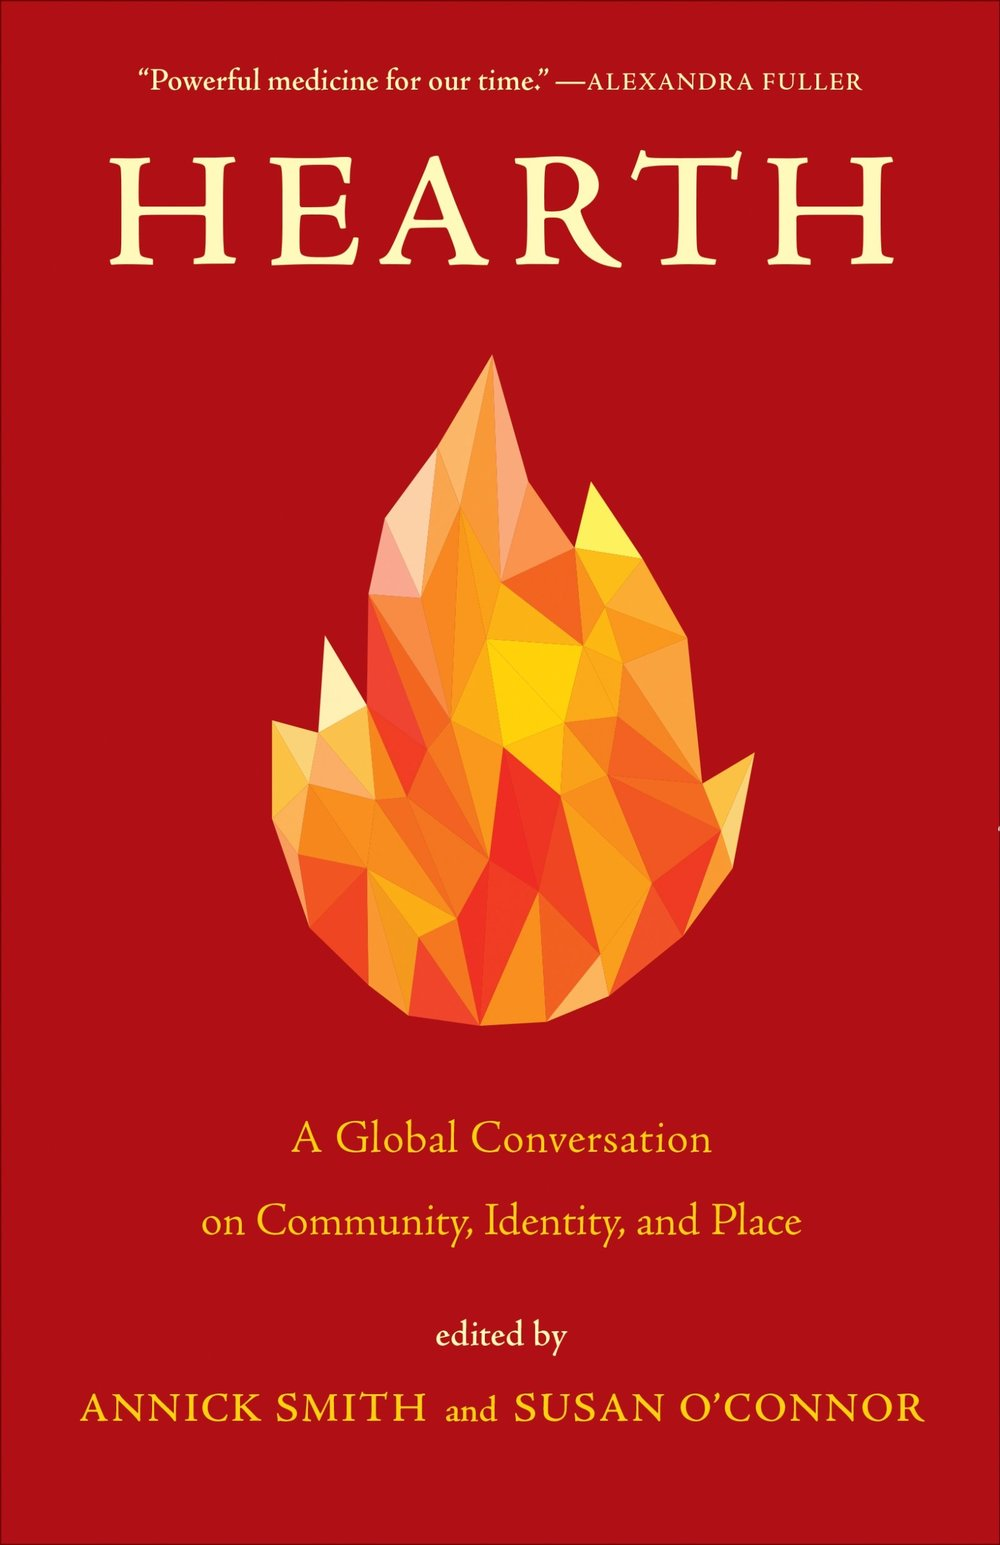 Capsule Reviews The Arkansas International Oxca Dip 101 Over Ip Console Insertion Card Hearth A Global Conversation On Community Identity And Place Edited By Annick